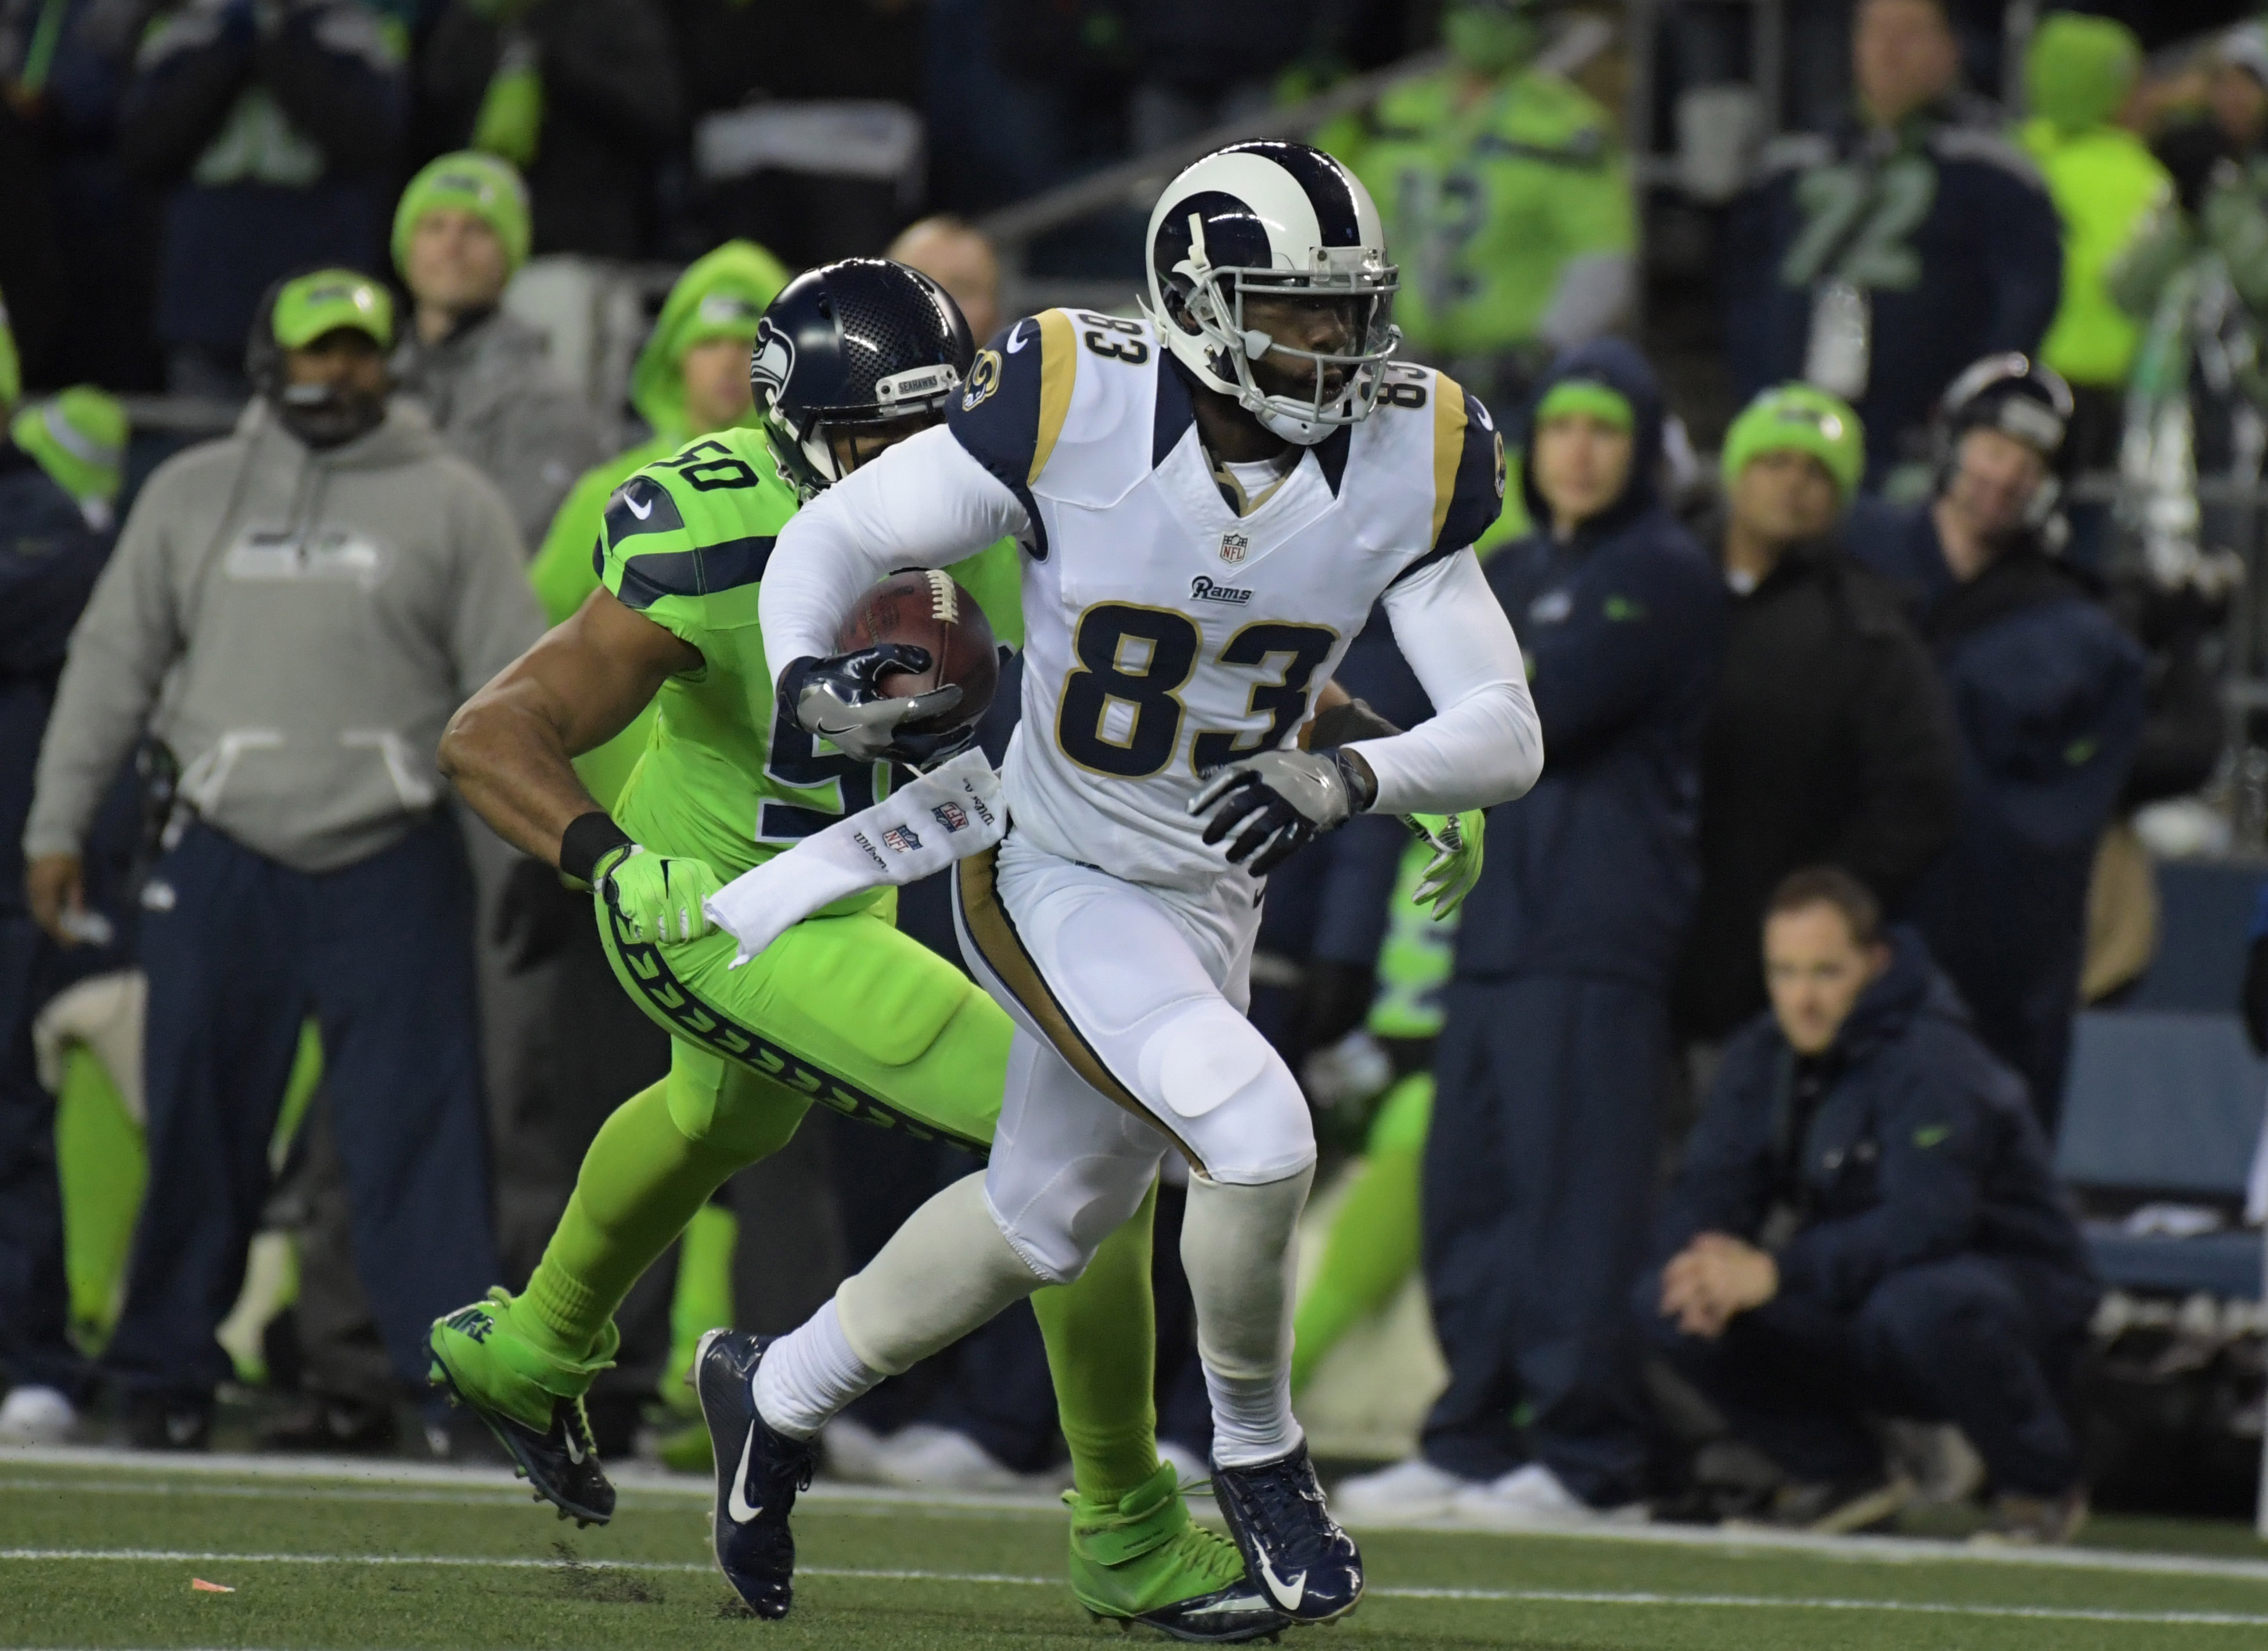 9747960-nfl-los-angeles-rams-at-seattle-seahawks